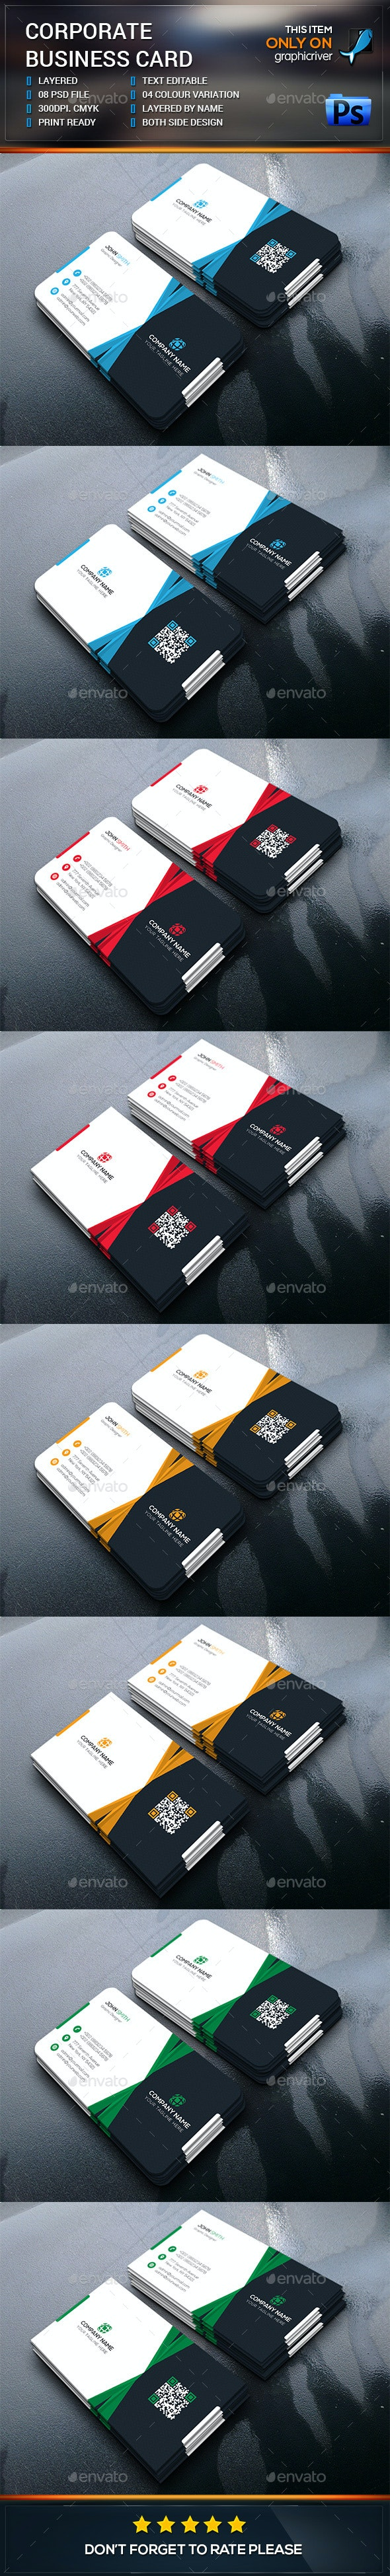 Corporate Business Card Design - Corporate Business Cards